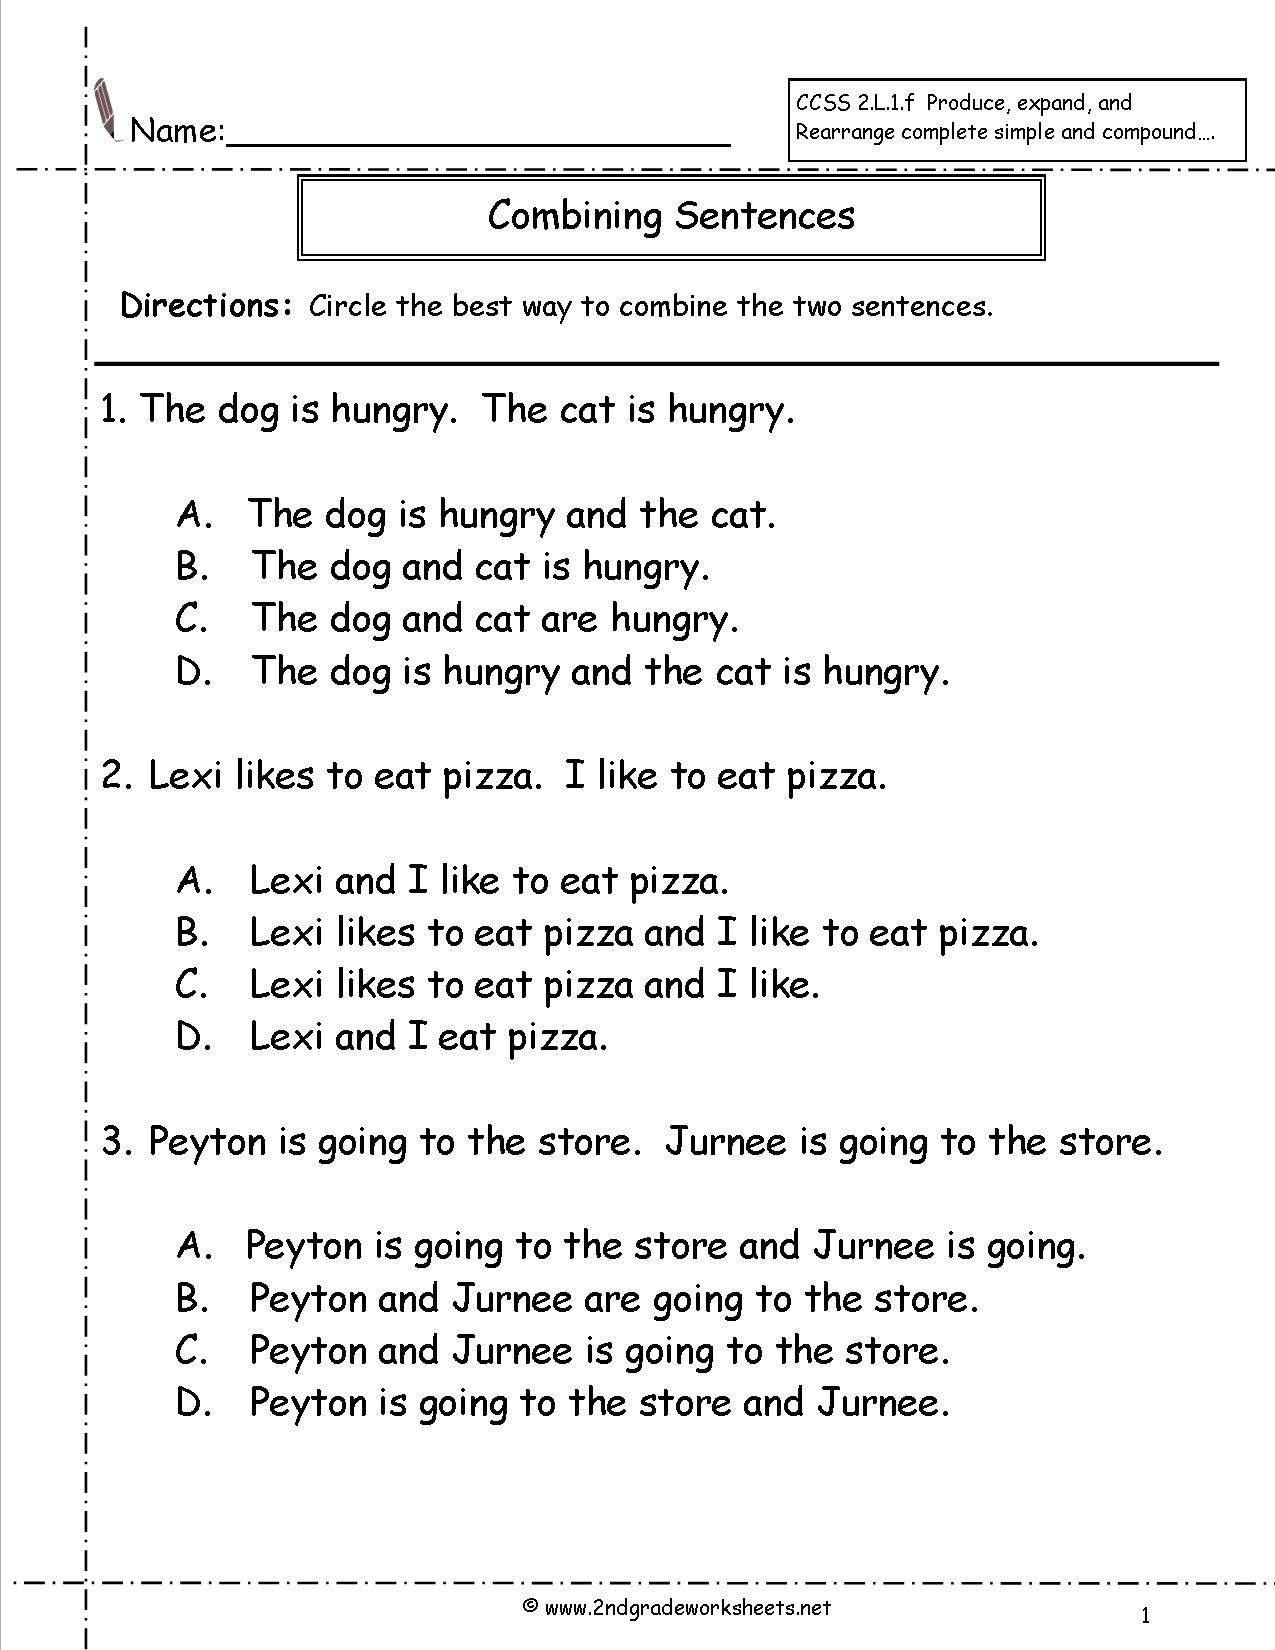 Combining Sentences Worksheet With Images Combining Sentences